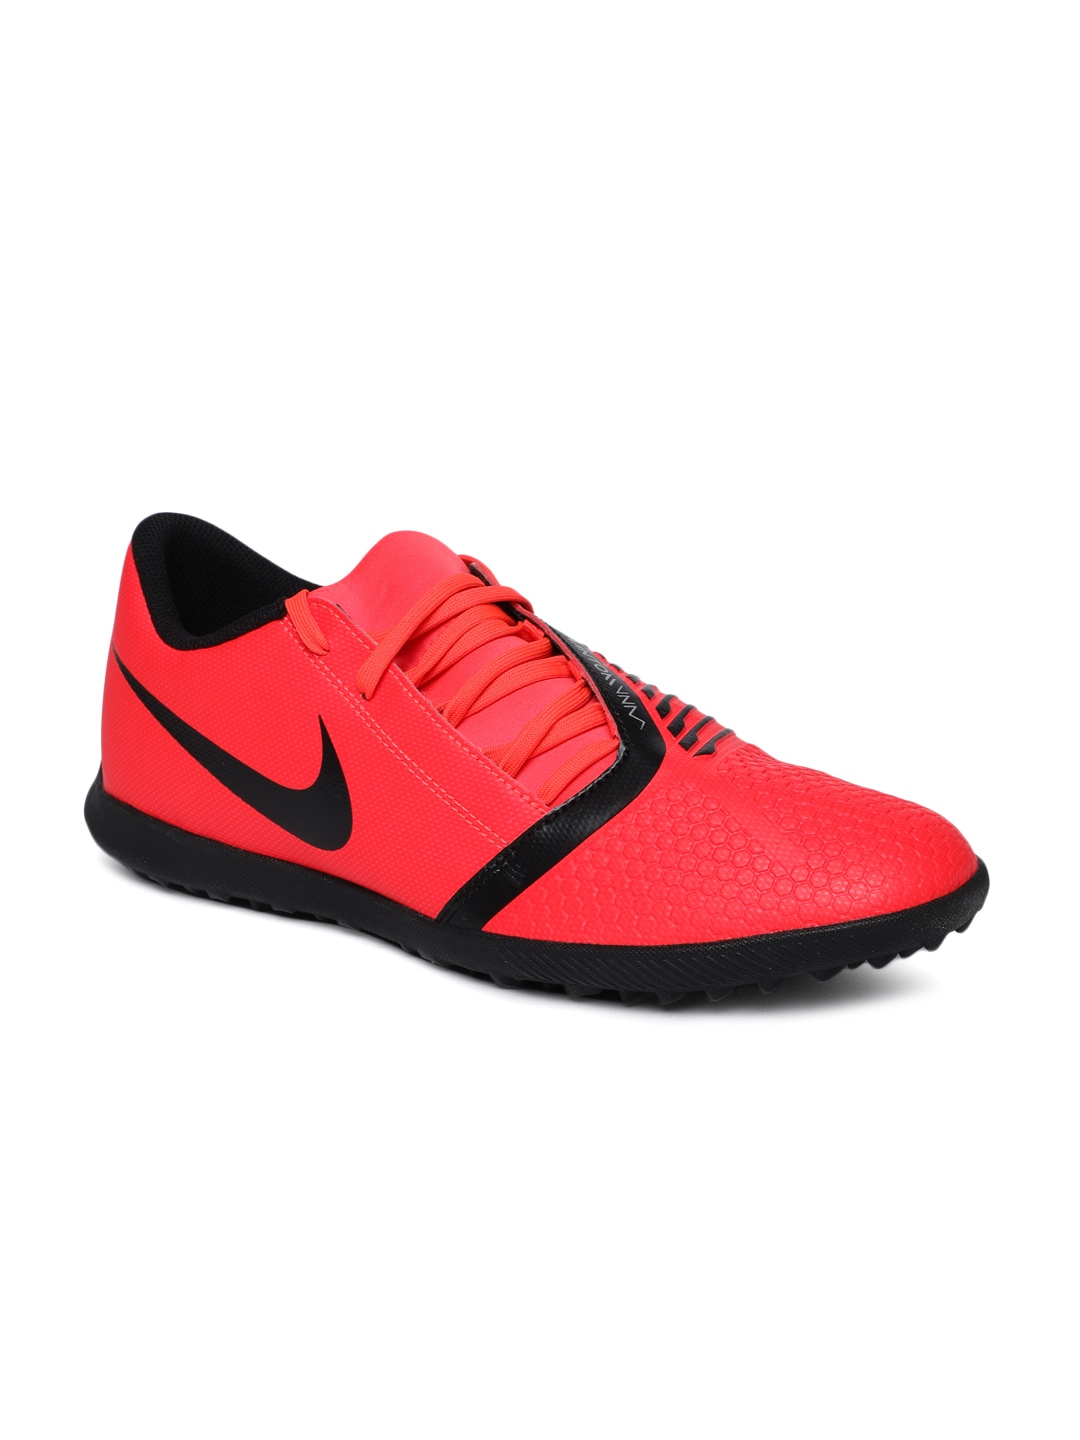 49b27aa38547 Nike Red Shoes - Buy Nike Red Shoes Online in India